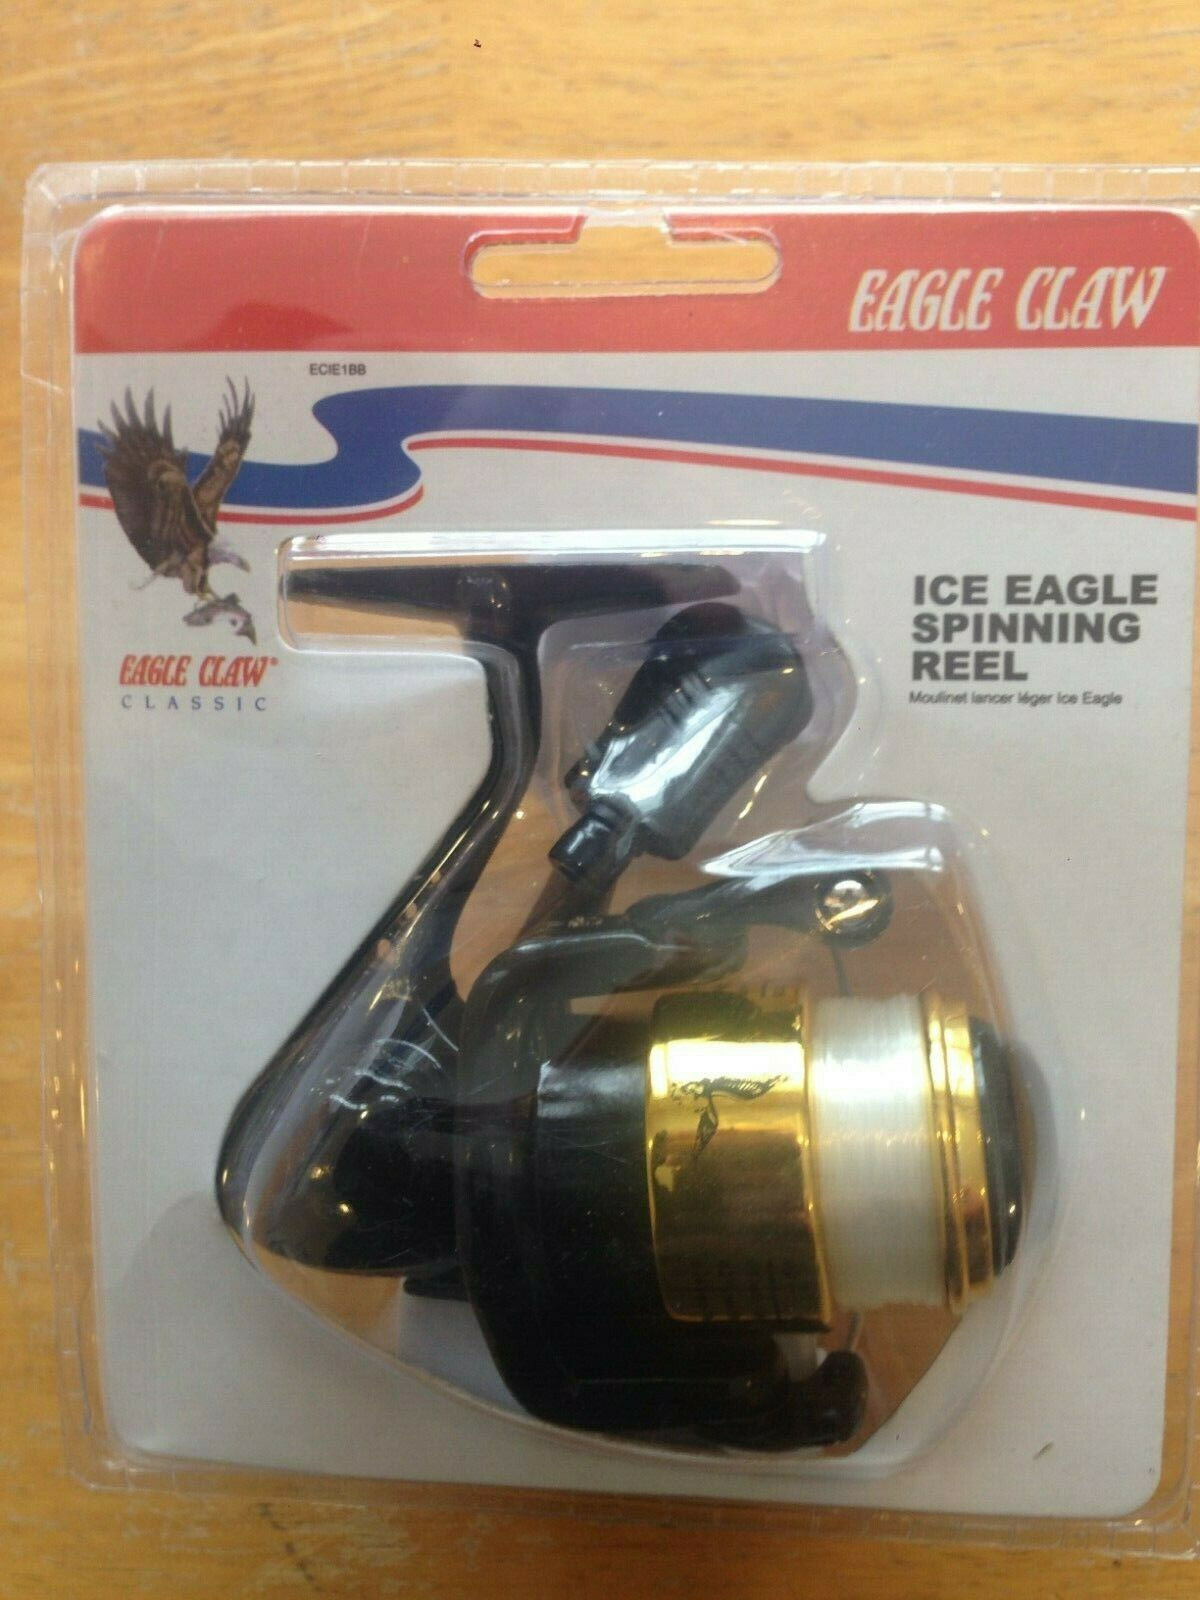 EAGLE CLAW ECIE1BB ICE EAGLE SPINNING REEL